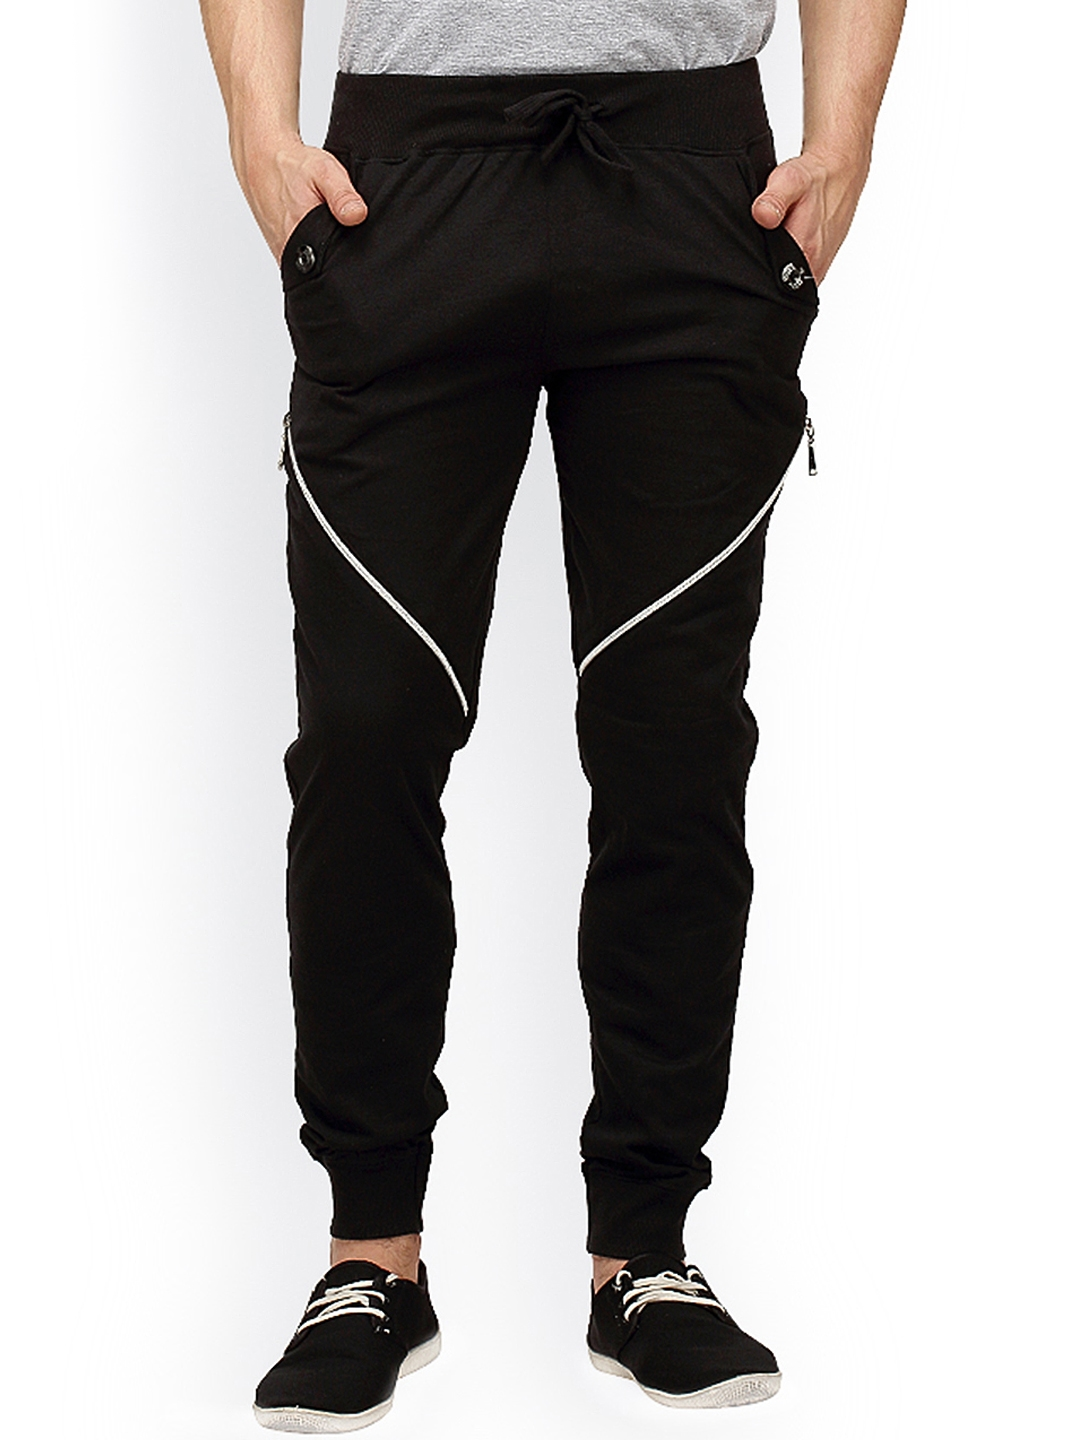 Campus Sutra Black Track Pants